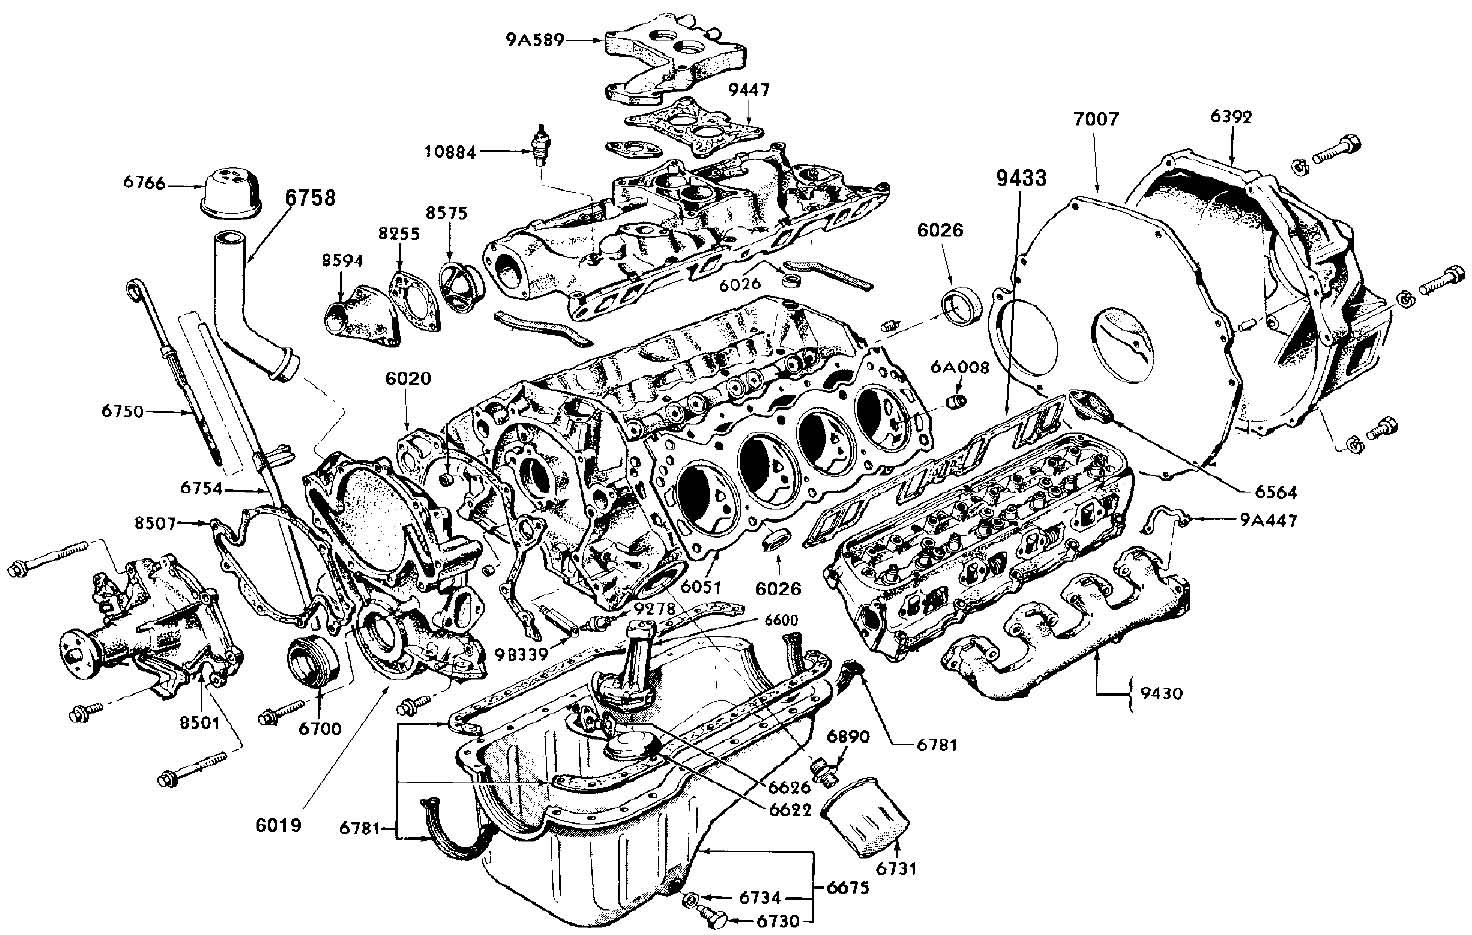 ford-289-engine-and-transmission-assembly-diagram-wiring-library.jpg